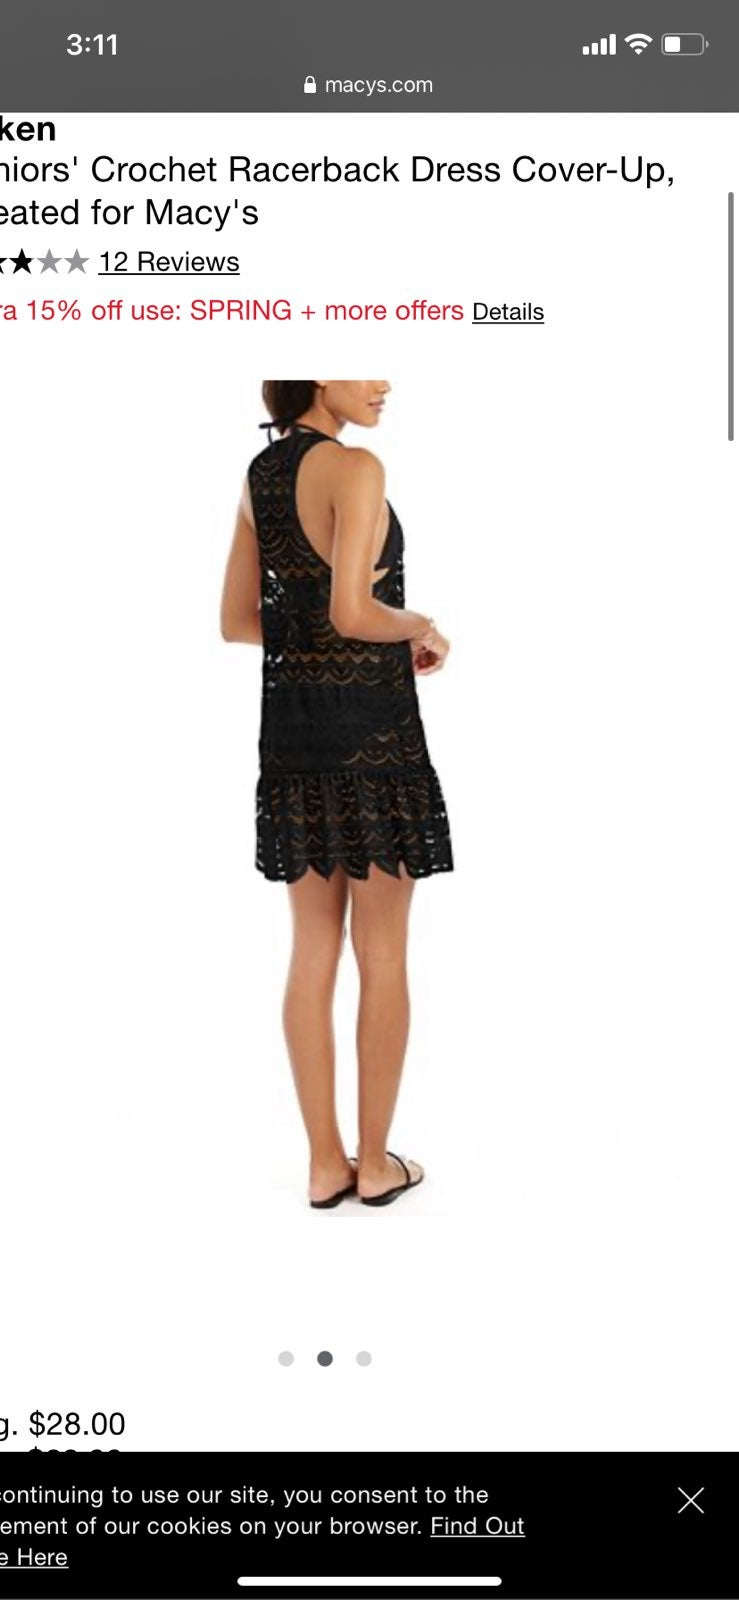 NWT Mike Crochet Lace Dress Cover-up